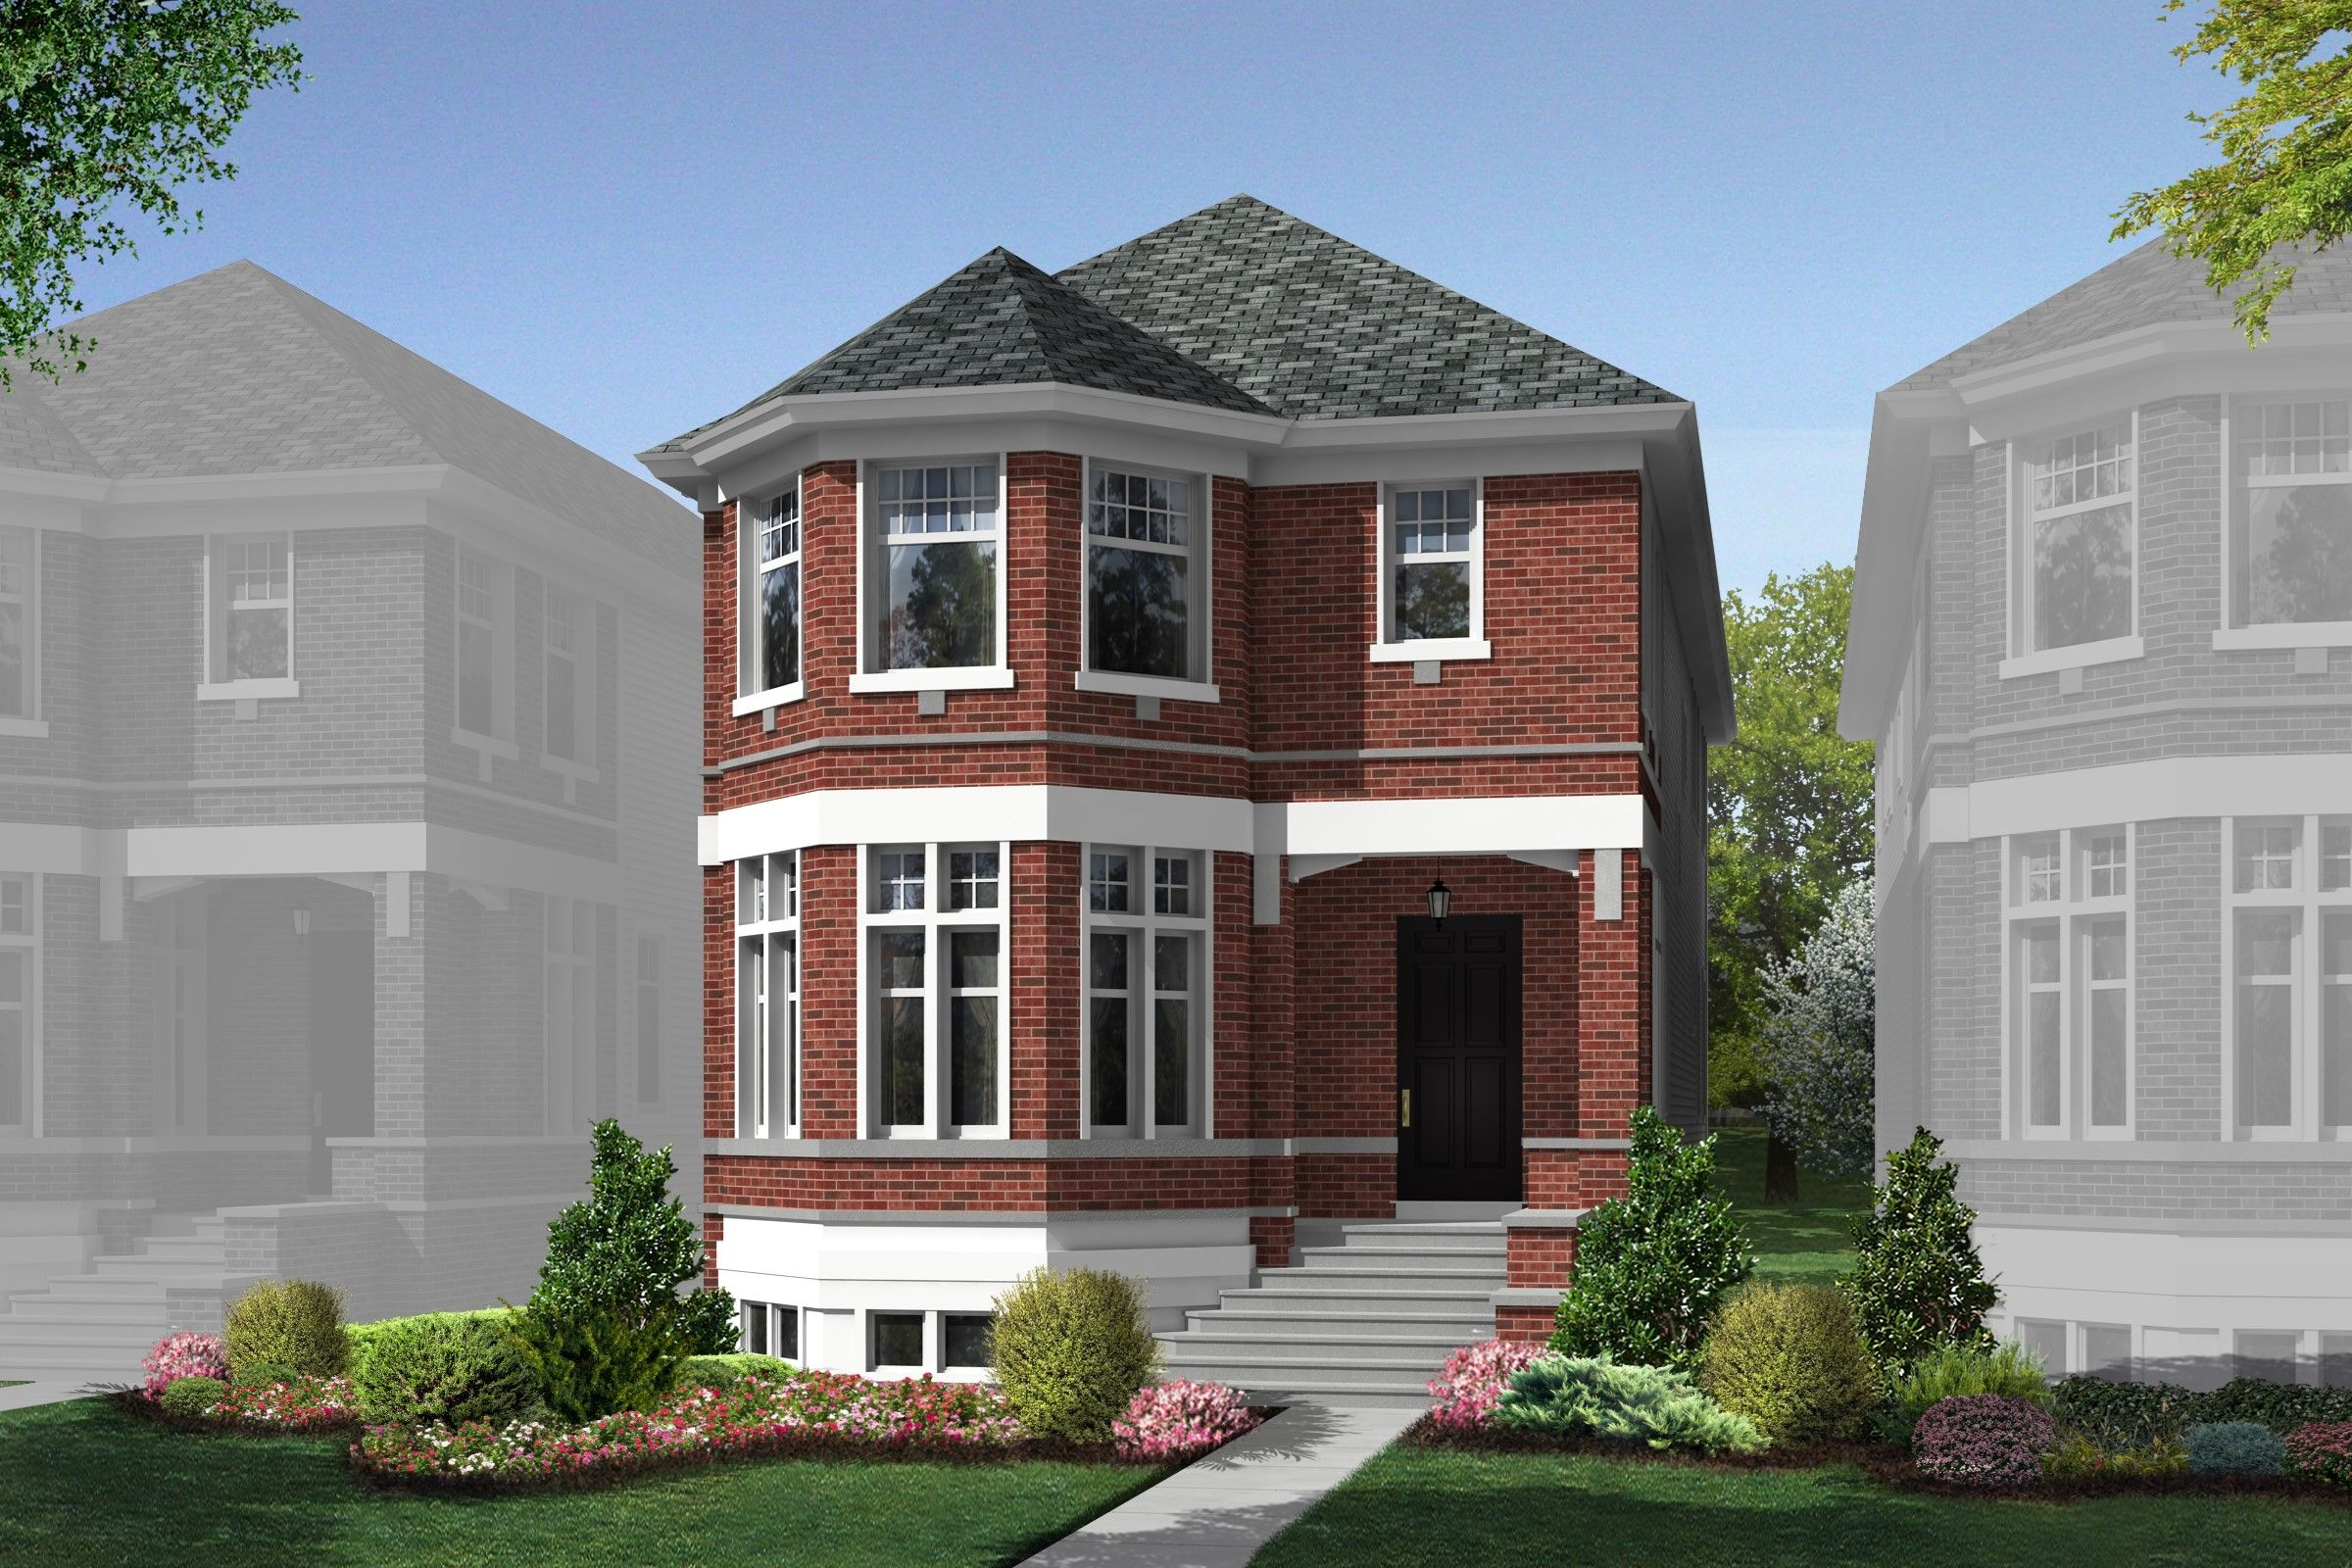 Real Estate at 6086 N. Sauganash Avenue, Homesite 28, Chicago in Cook County, IL 60646